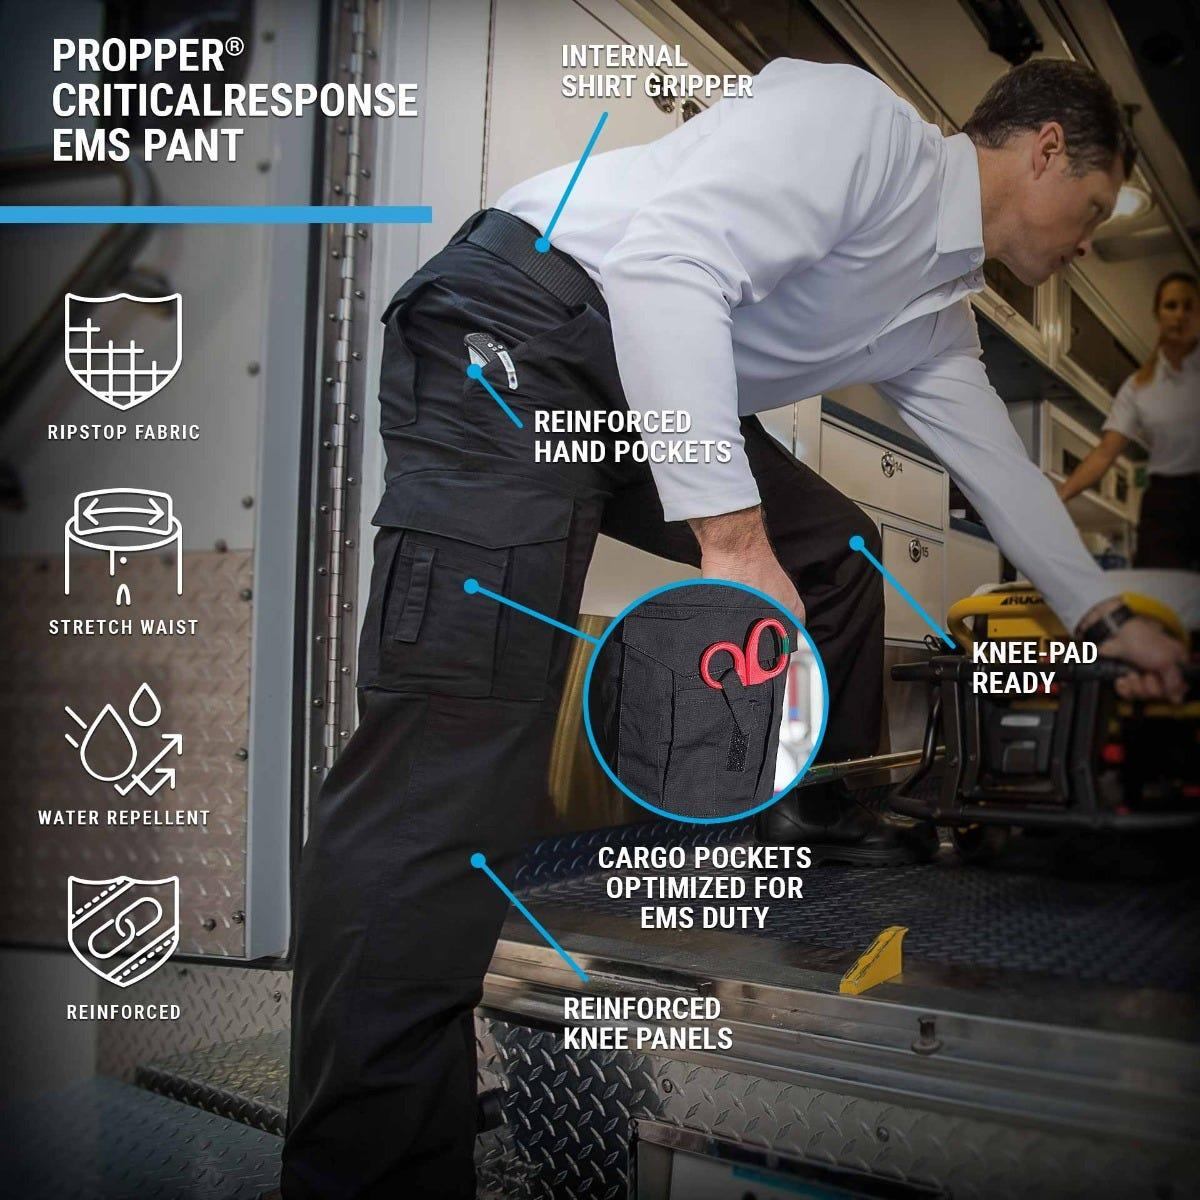 The Propper CriticalResponse EMS Pant features cargo pockets with scissor strap, knee pad inserts and DWR for EMT performance.